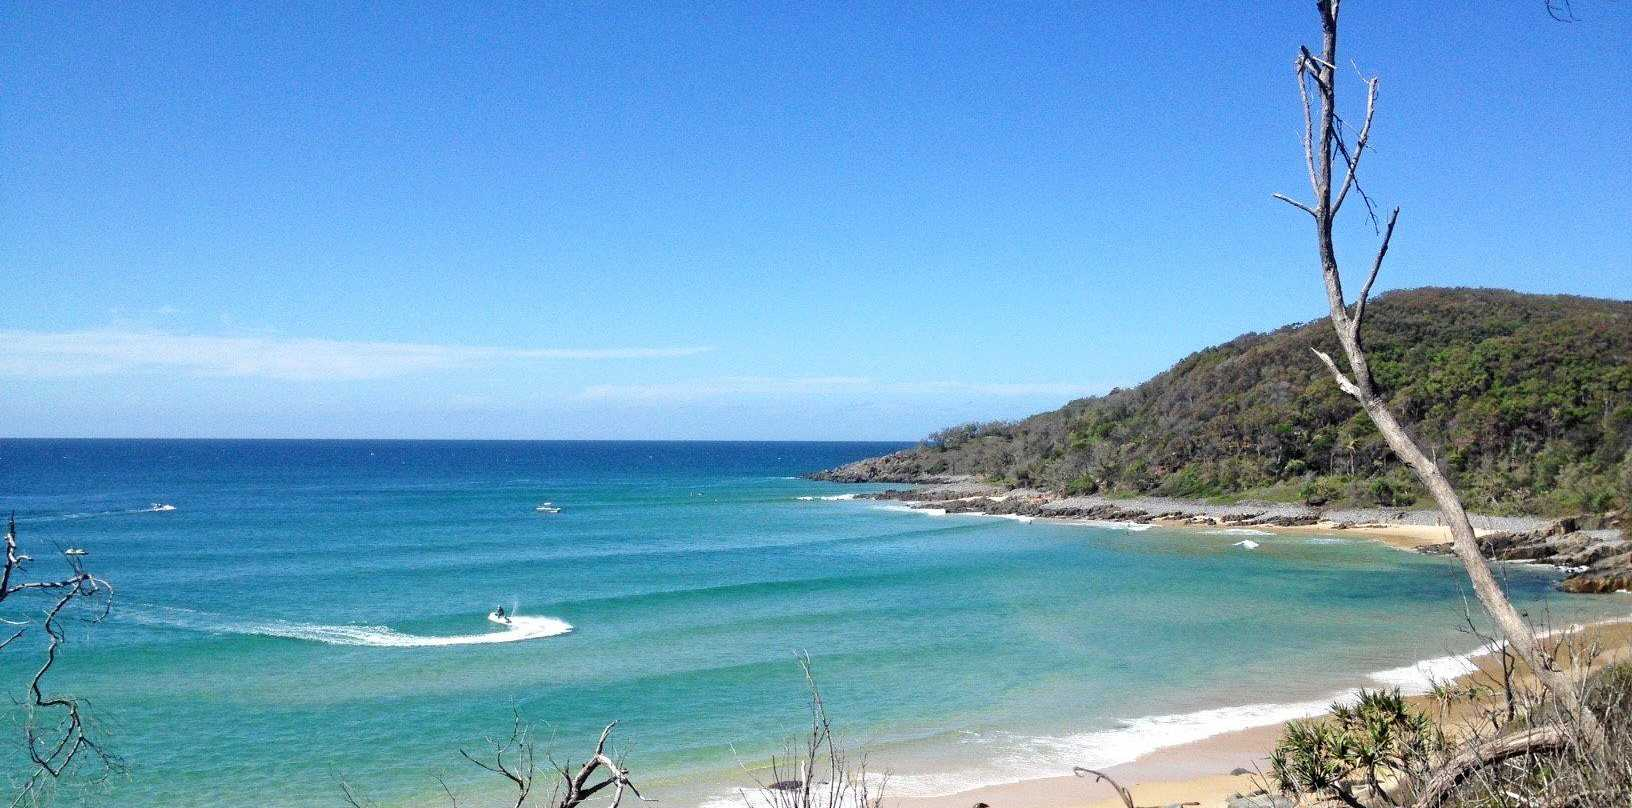 A rescue helicopter has been tasked to Tea Tree Bay in Noosa after a near-drowning incident.